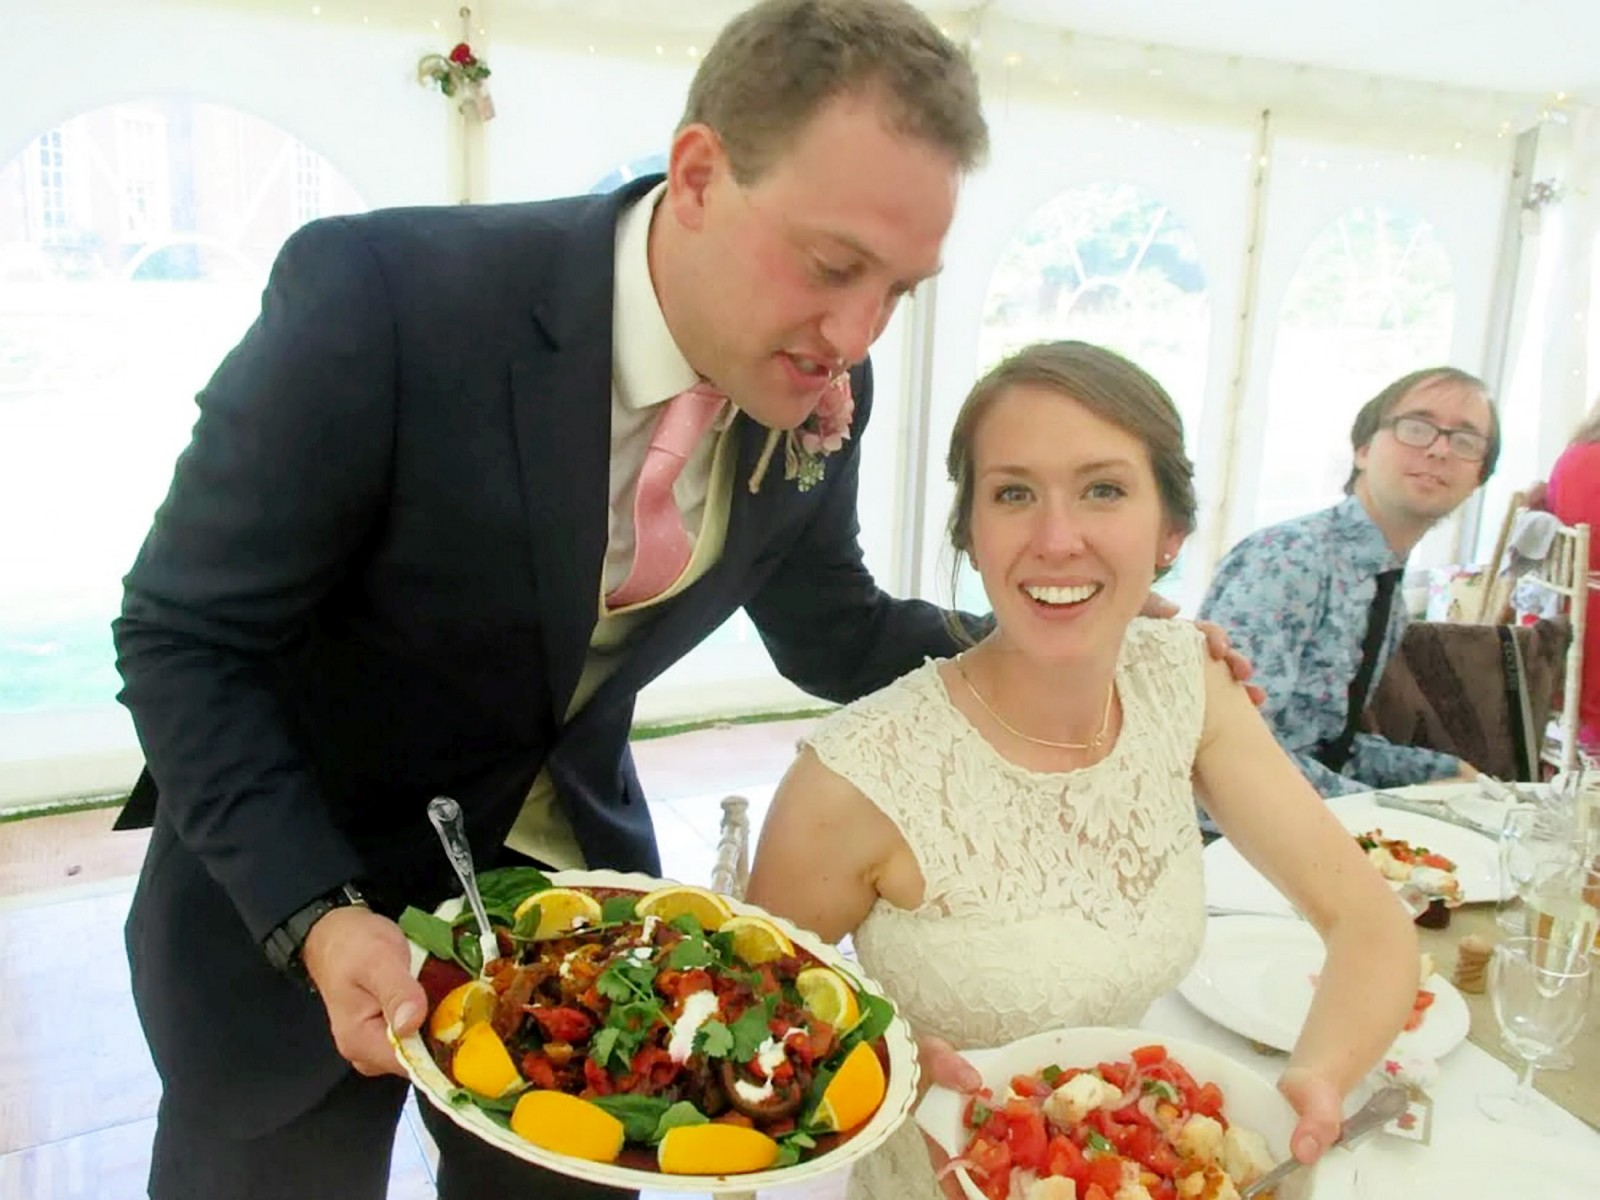 Bride and groom serve their wedding guests a meal destined for the BIN